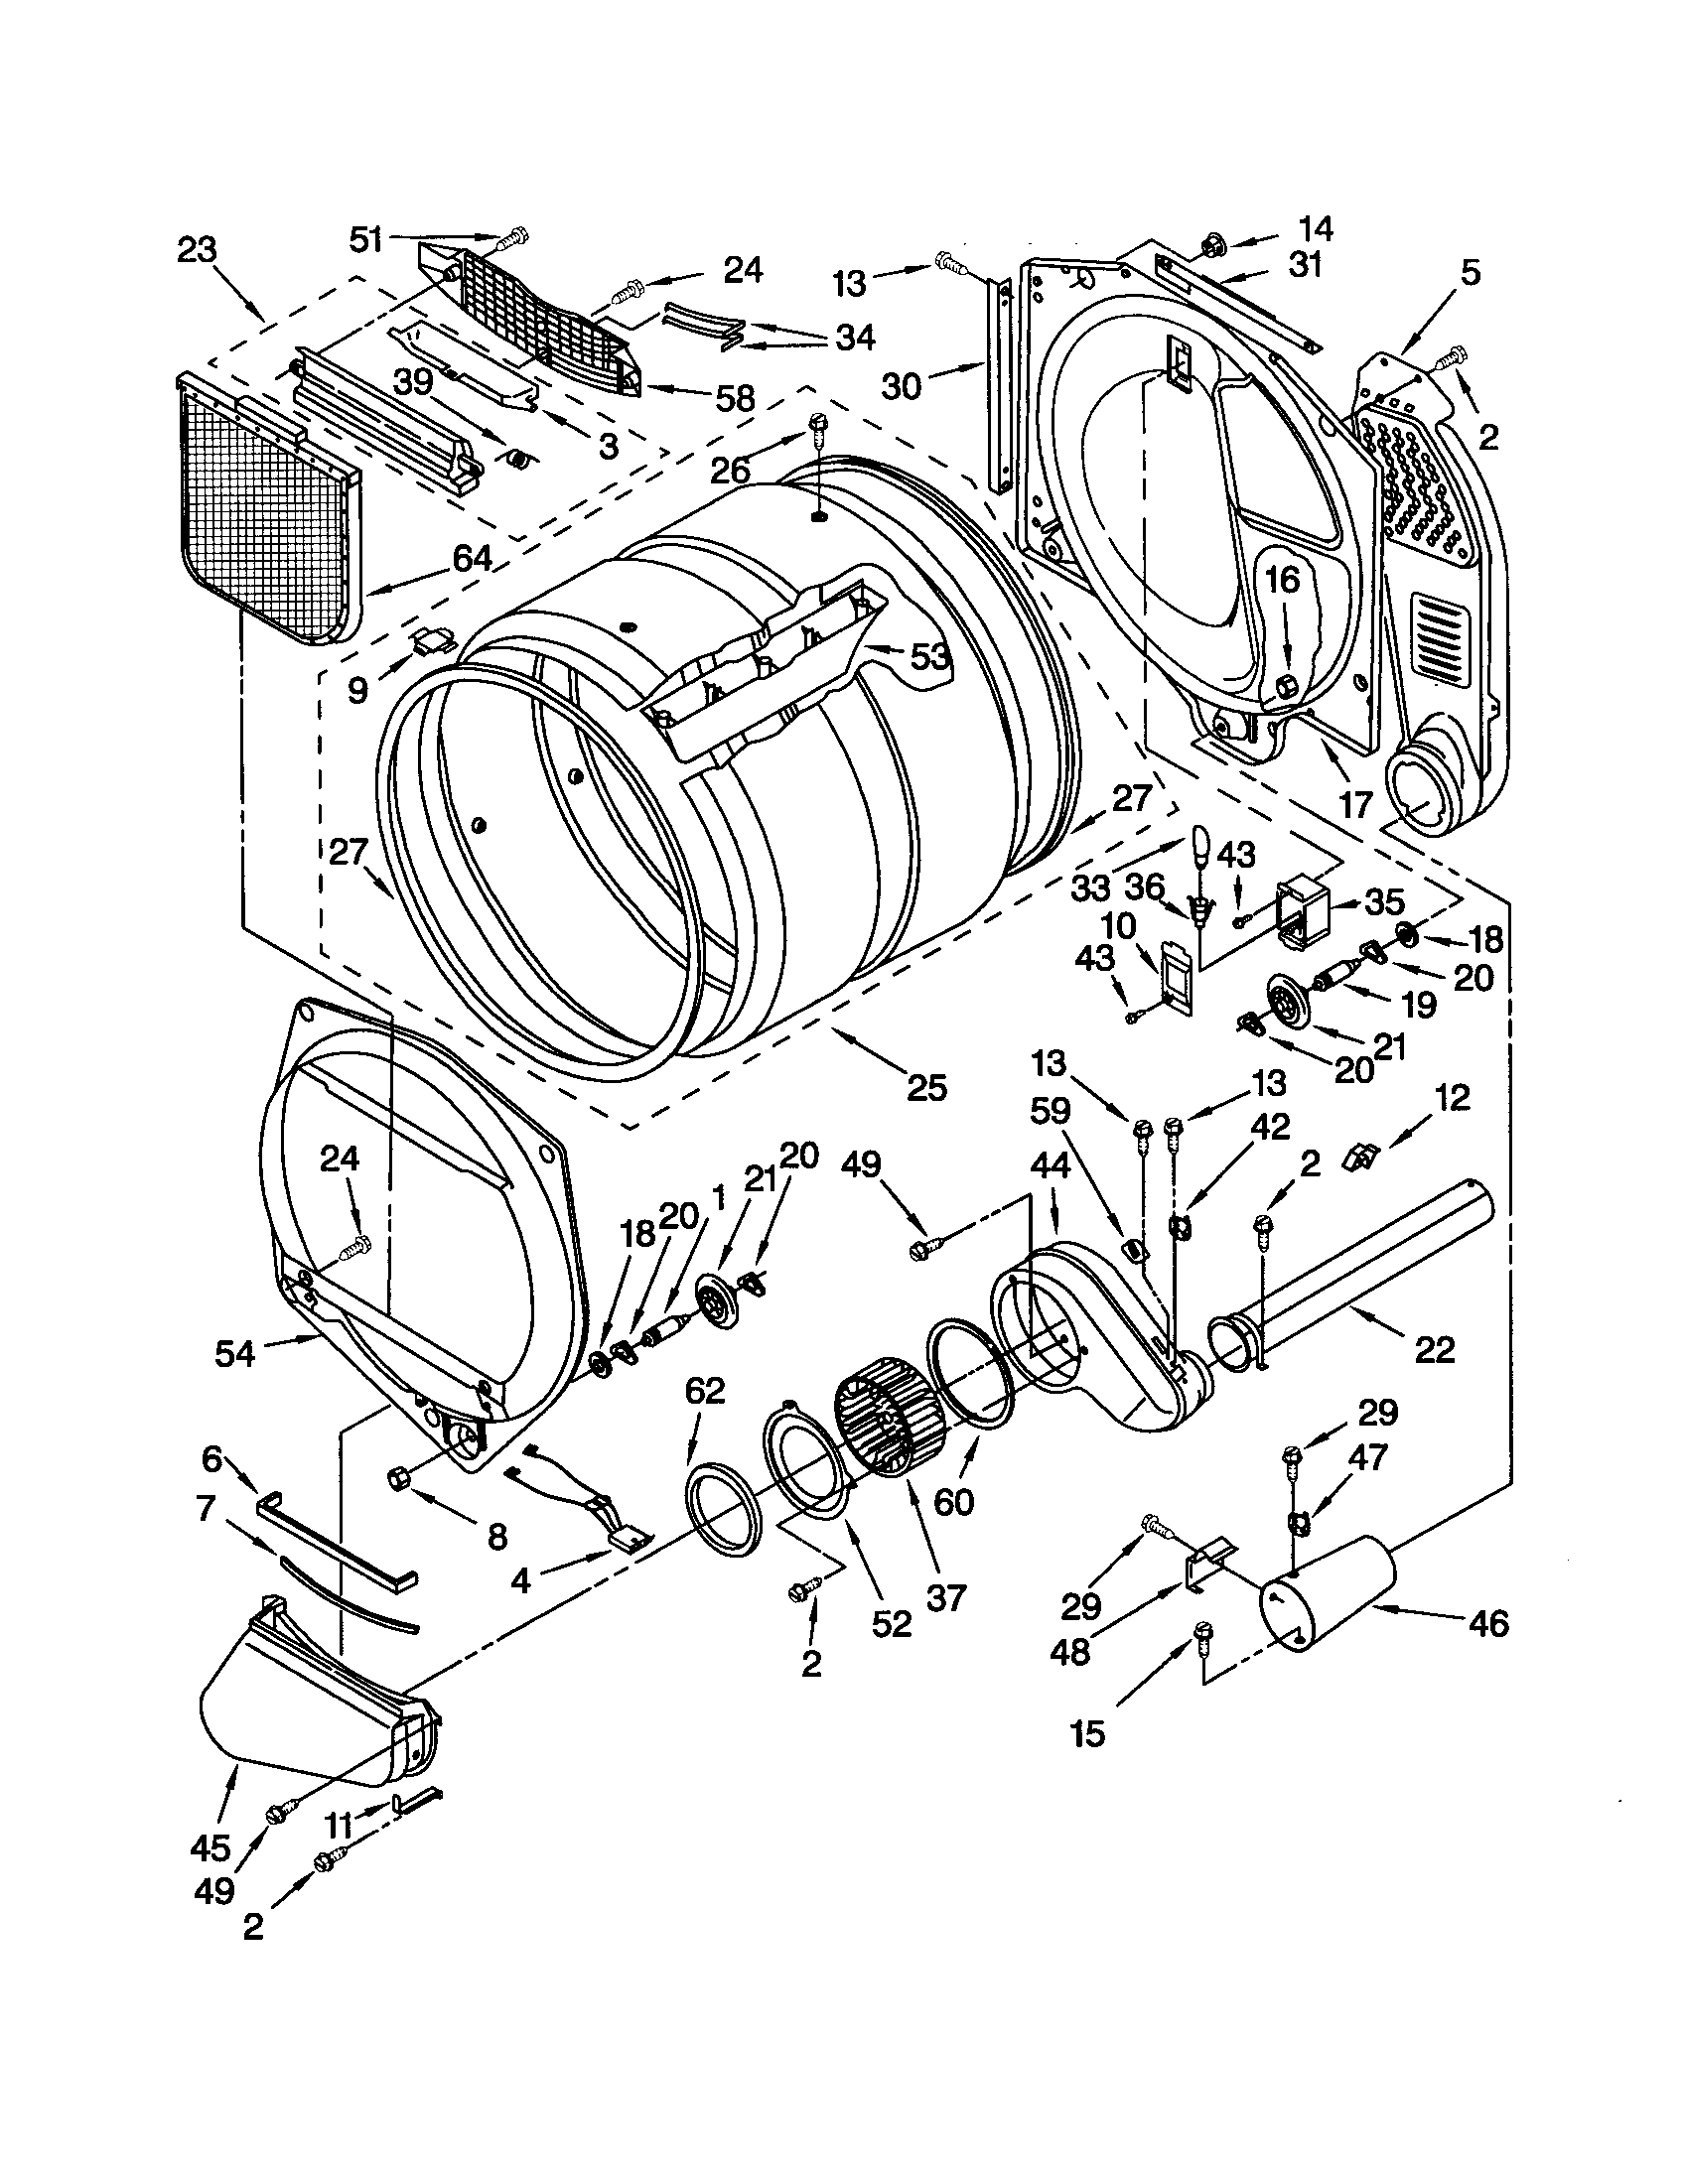 hight resolution of kenmore dryer wiring diagram 220 data diagram schematic kenmore dryer wiring diagram 220